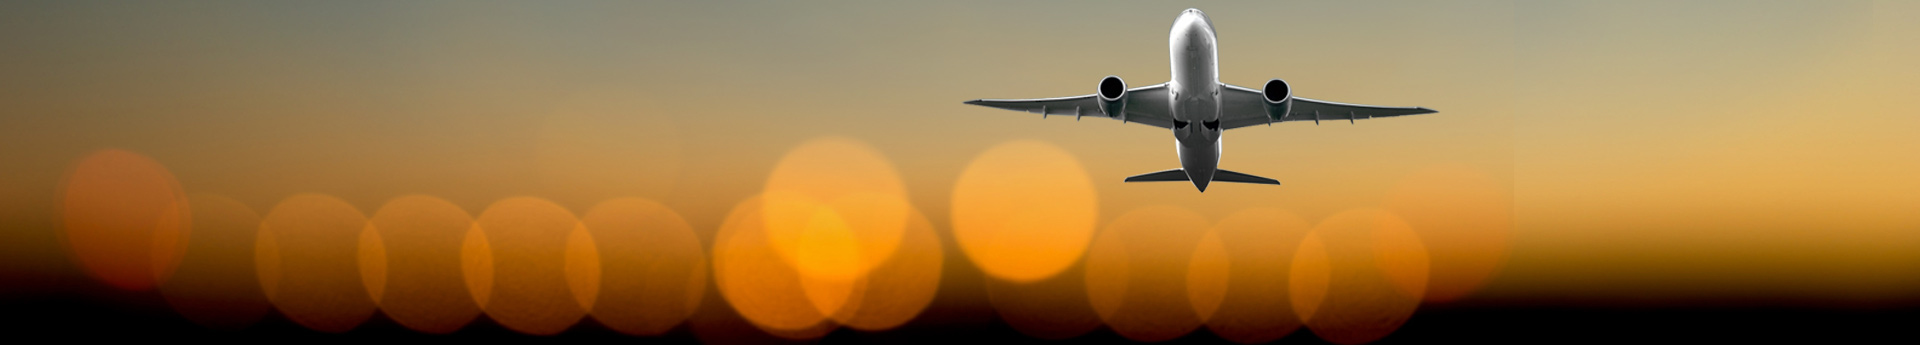 aircraft-taking-off-1920x345